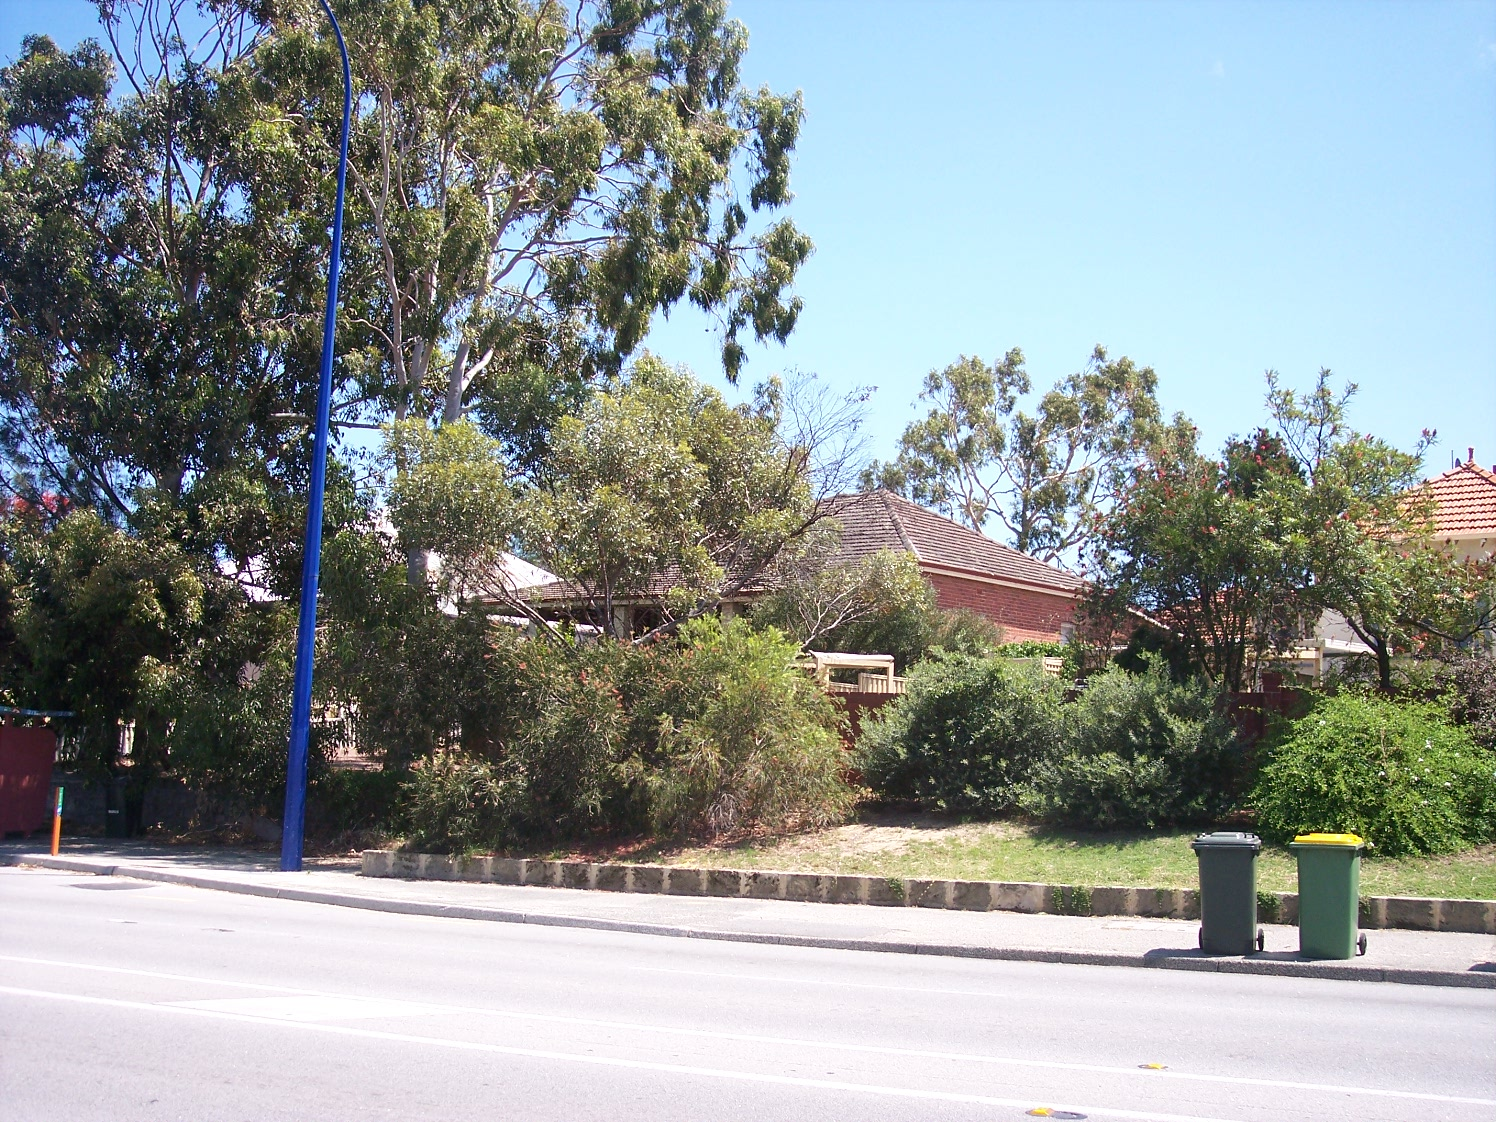 31-10-06 View NW 240 Canning Highway.jpg